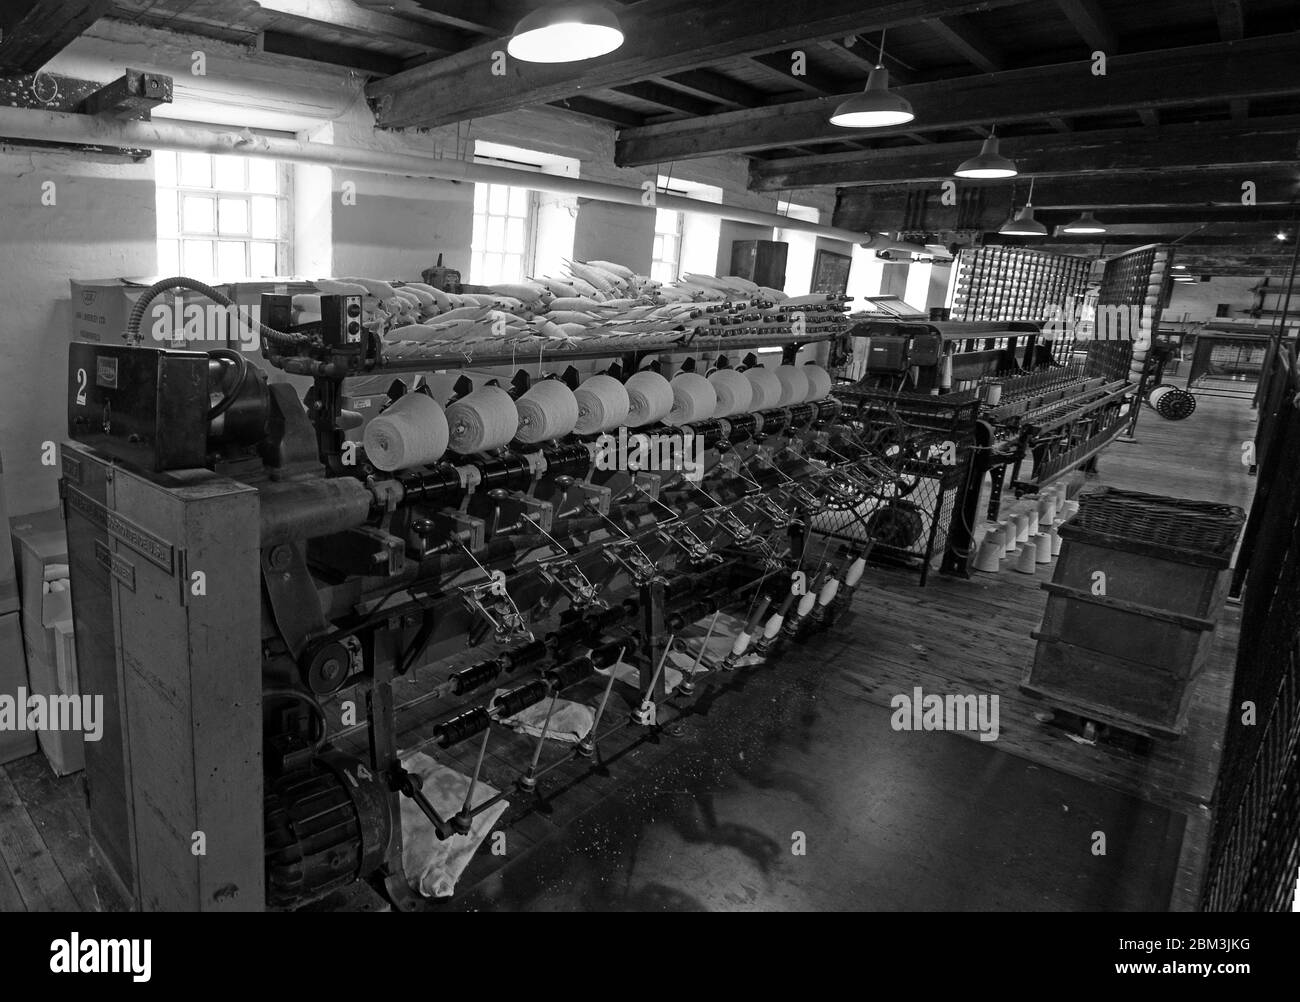 GoTonySmith,HotpixUK,@HotpixUK,Manchester,industry,factory,mill,history,machines,cloth,manufacture,Lancashire,Victorian,mass production,Industrial Revolution,Textile manufacturing,Manchester factory,manufacturing cotton and cloth,cotton yarn,Cotton Mill,Cottonopolis,Inside a Manchester Cotton Mill,coning,machine